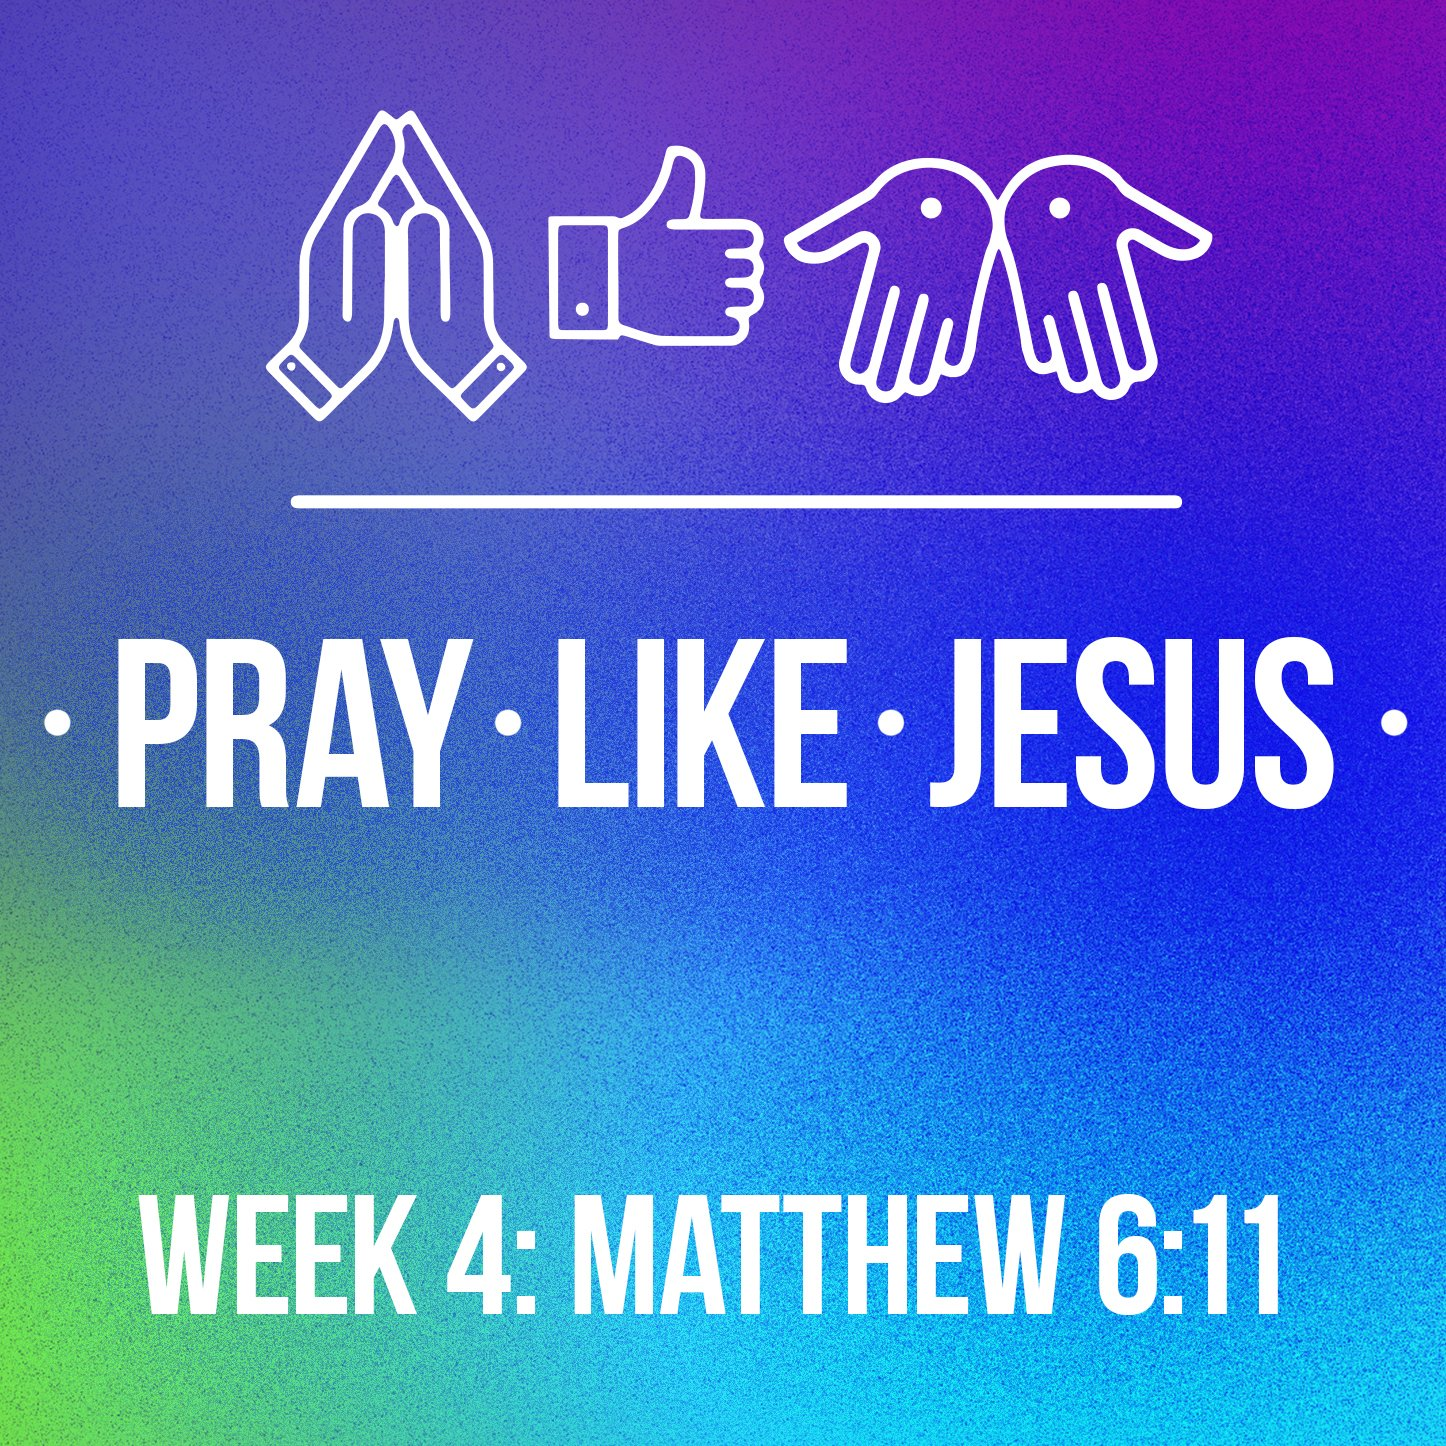 Pray Like Jesus Web 4